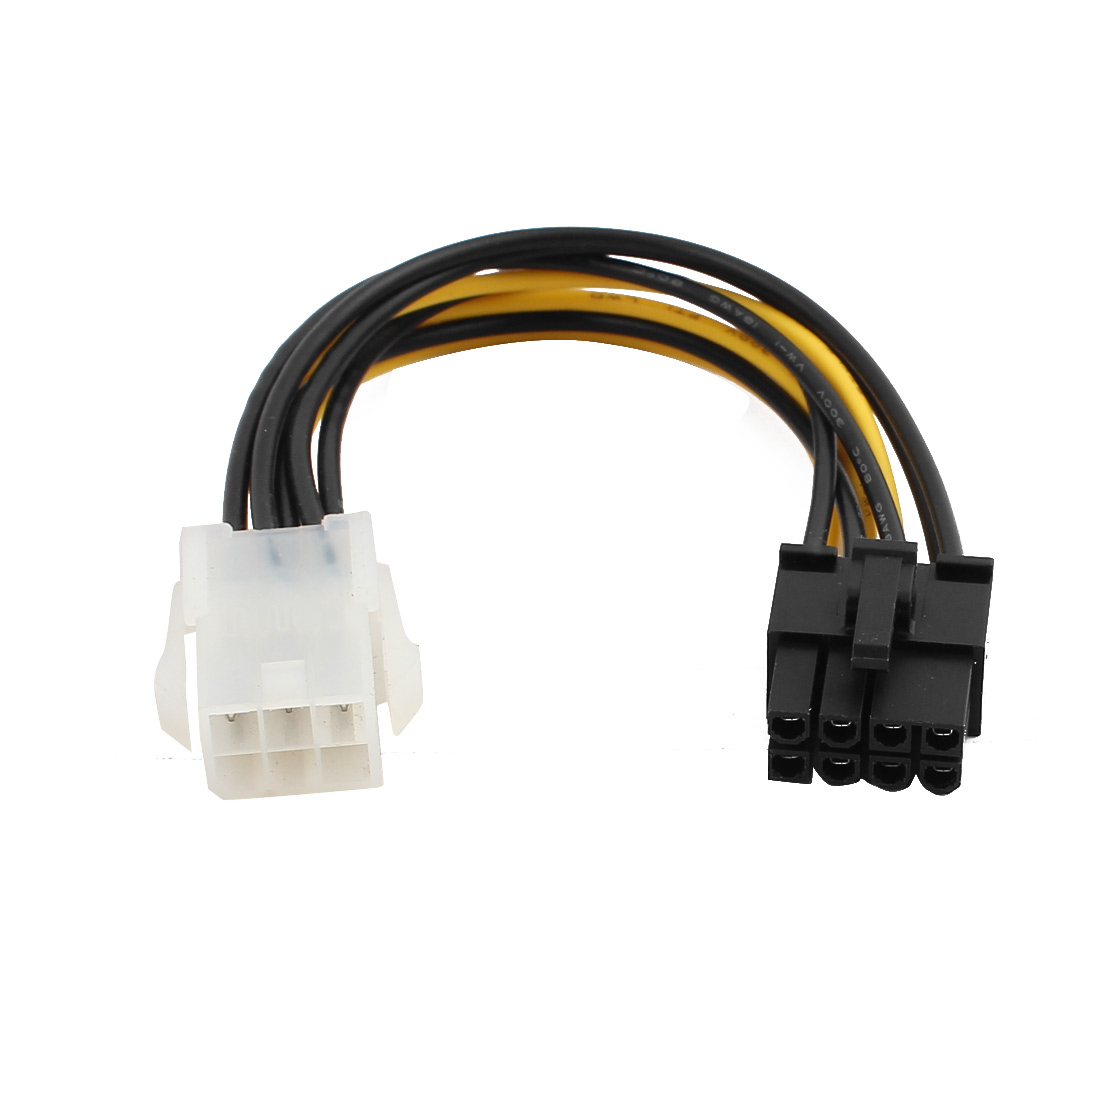 6 Pin to 8 Pin PCIE PCI Express Video Card Power Supply Cable Adapter